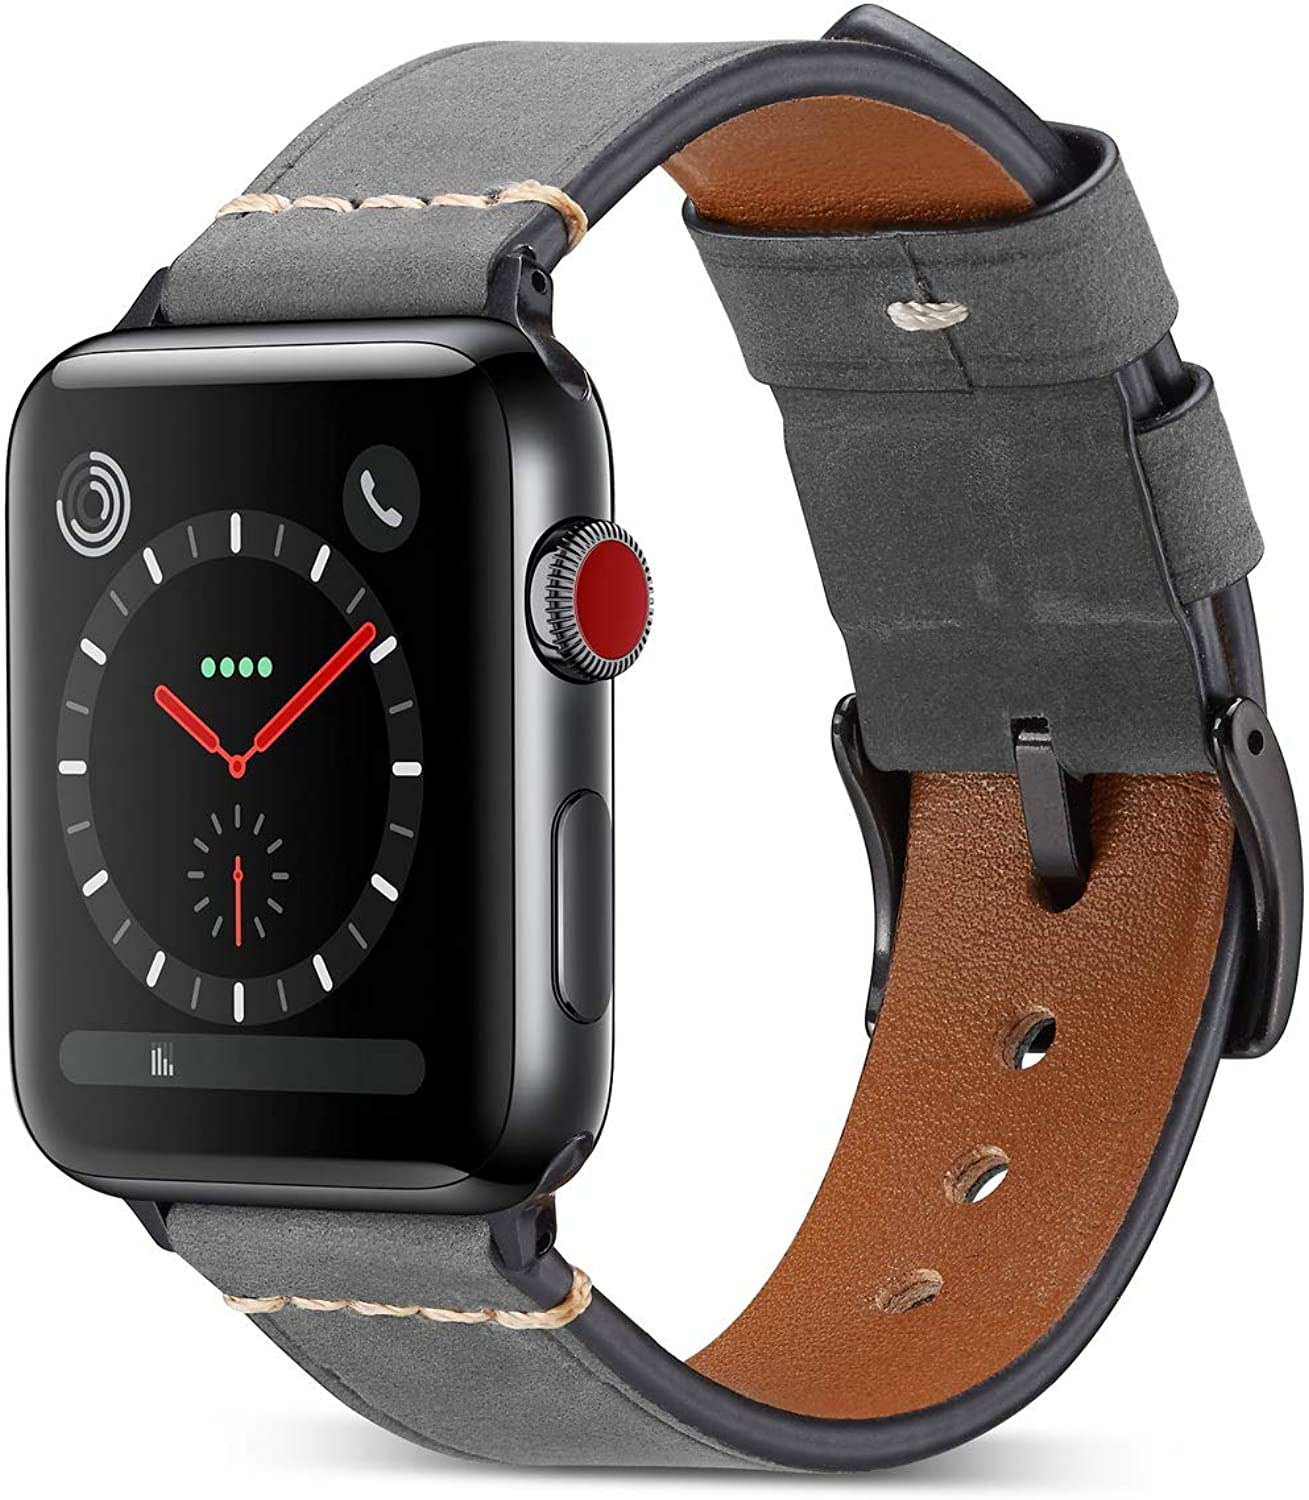 DaGeLon Compatible with Apple Watch Band 38mm 40mm Series 6 SE Series 5 Series 4 3 2 1, Frosted Leather Wristband Elegant Replacement Strap Durable Watchband for iWatch Sport Edition Nike+, Gray